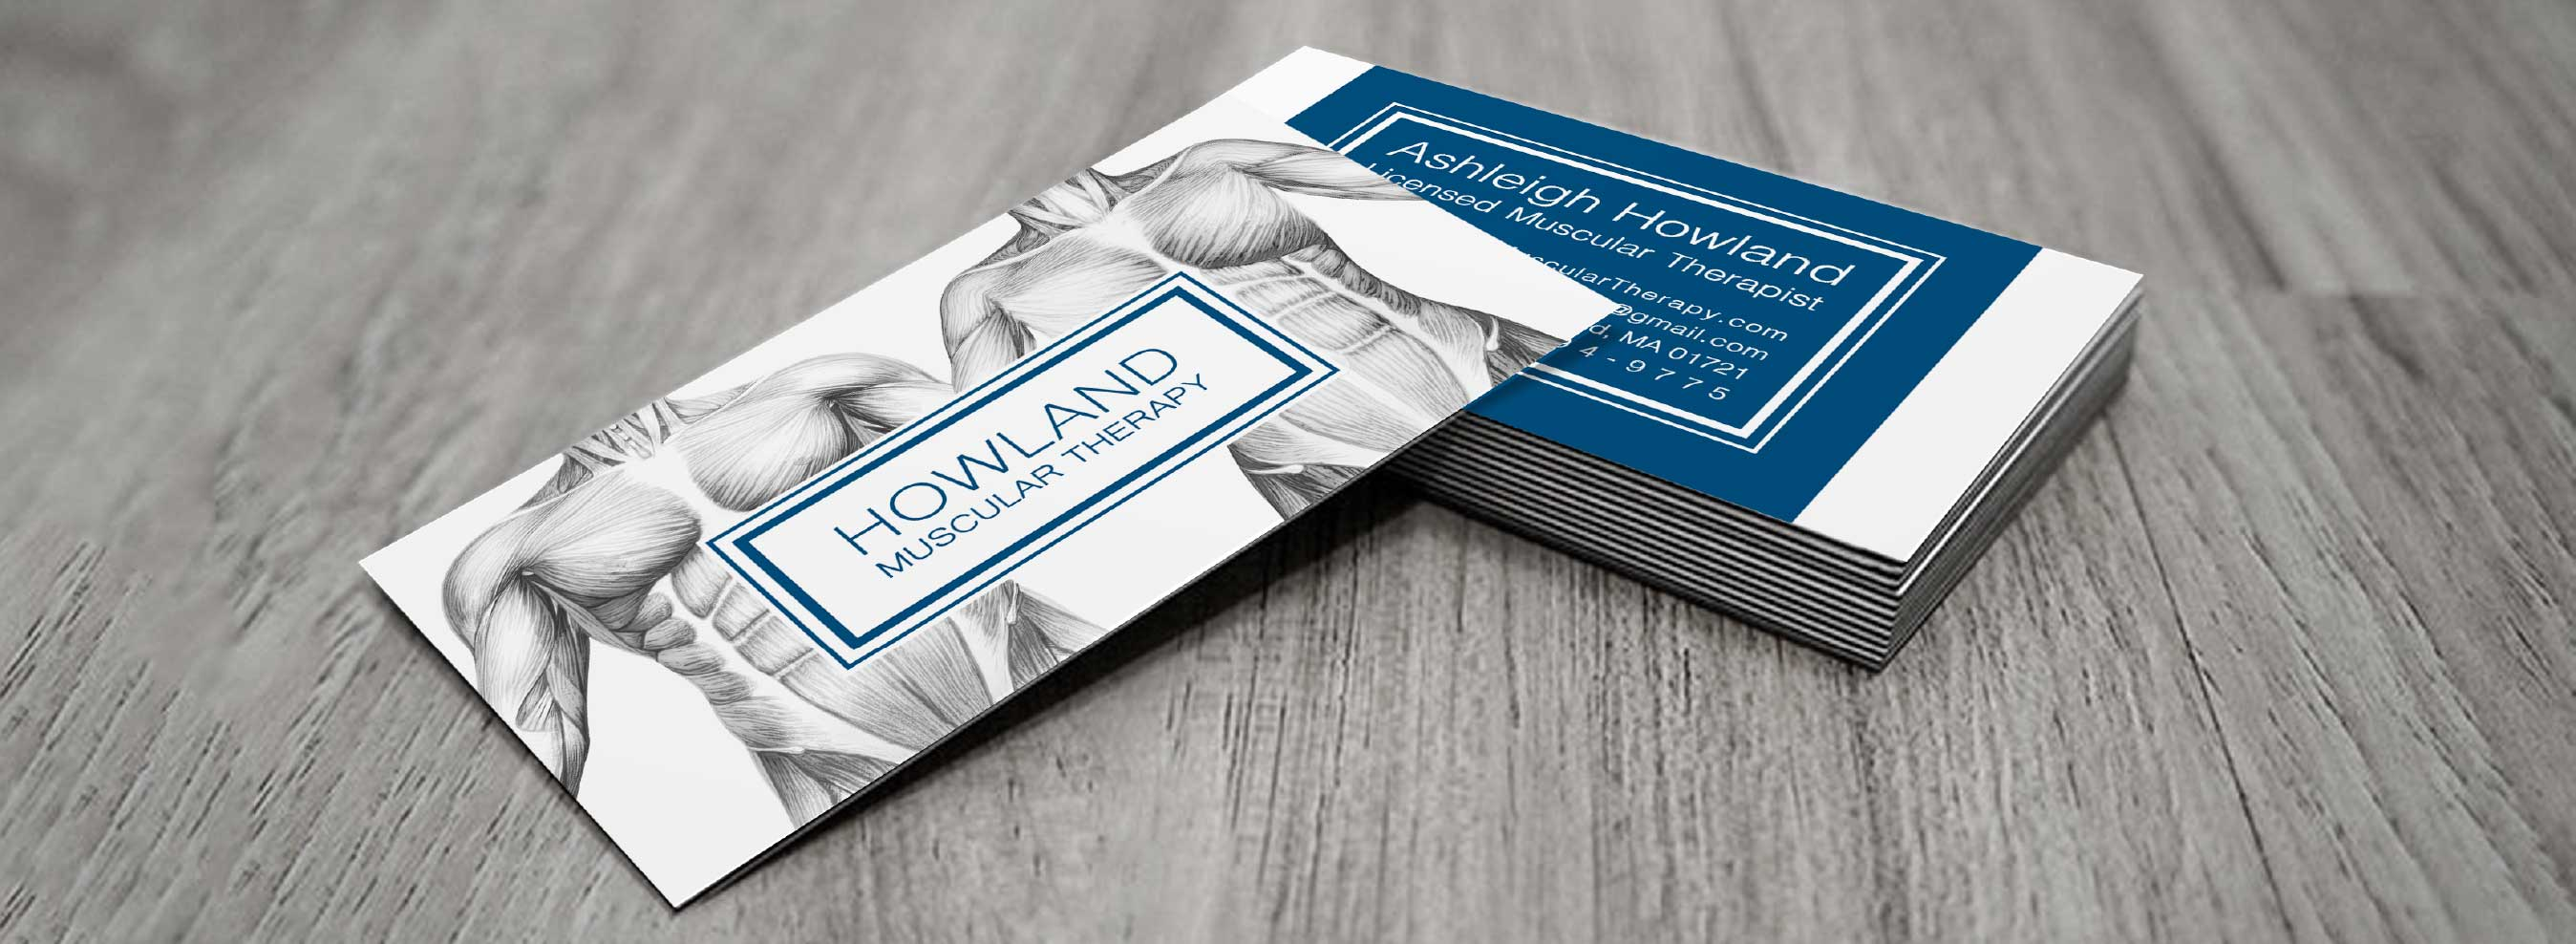 print design business cards